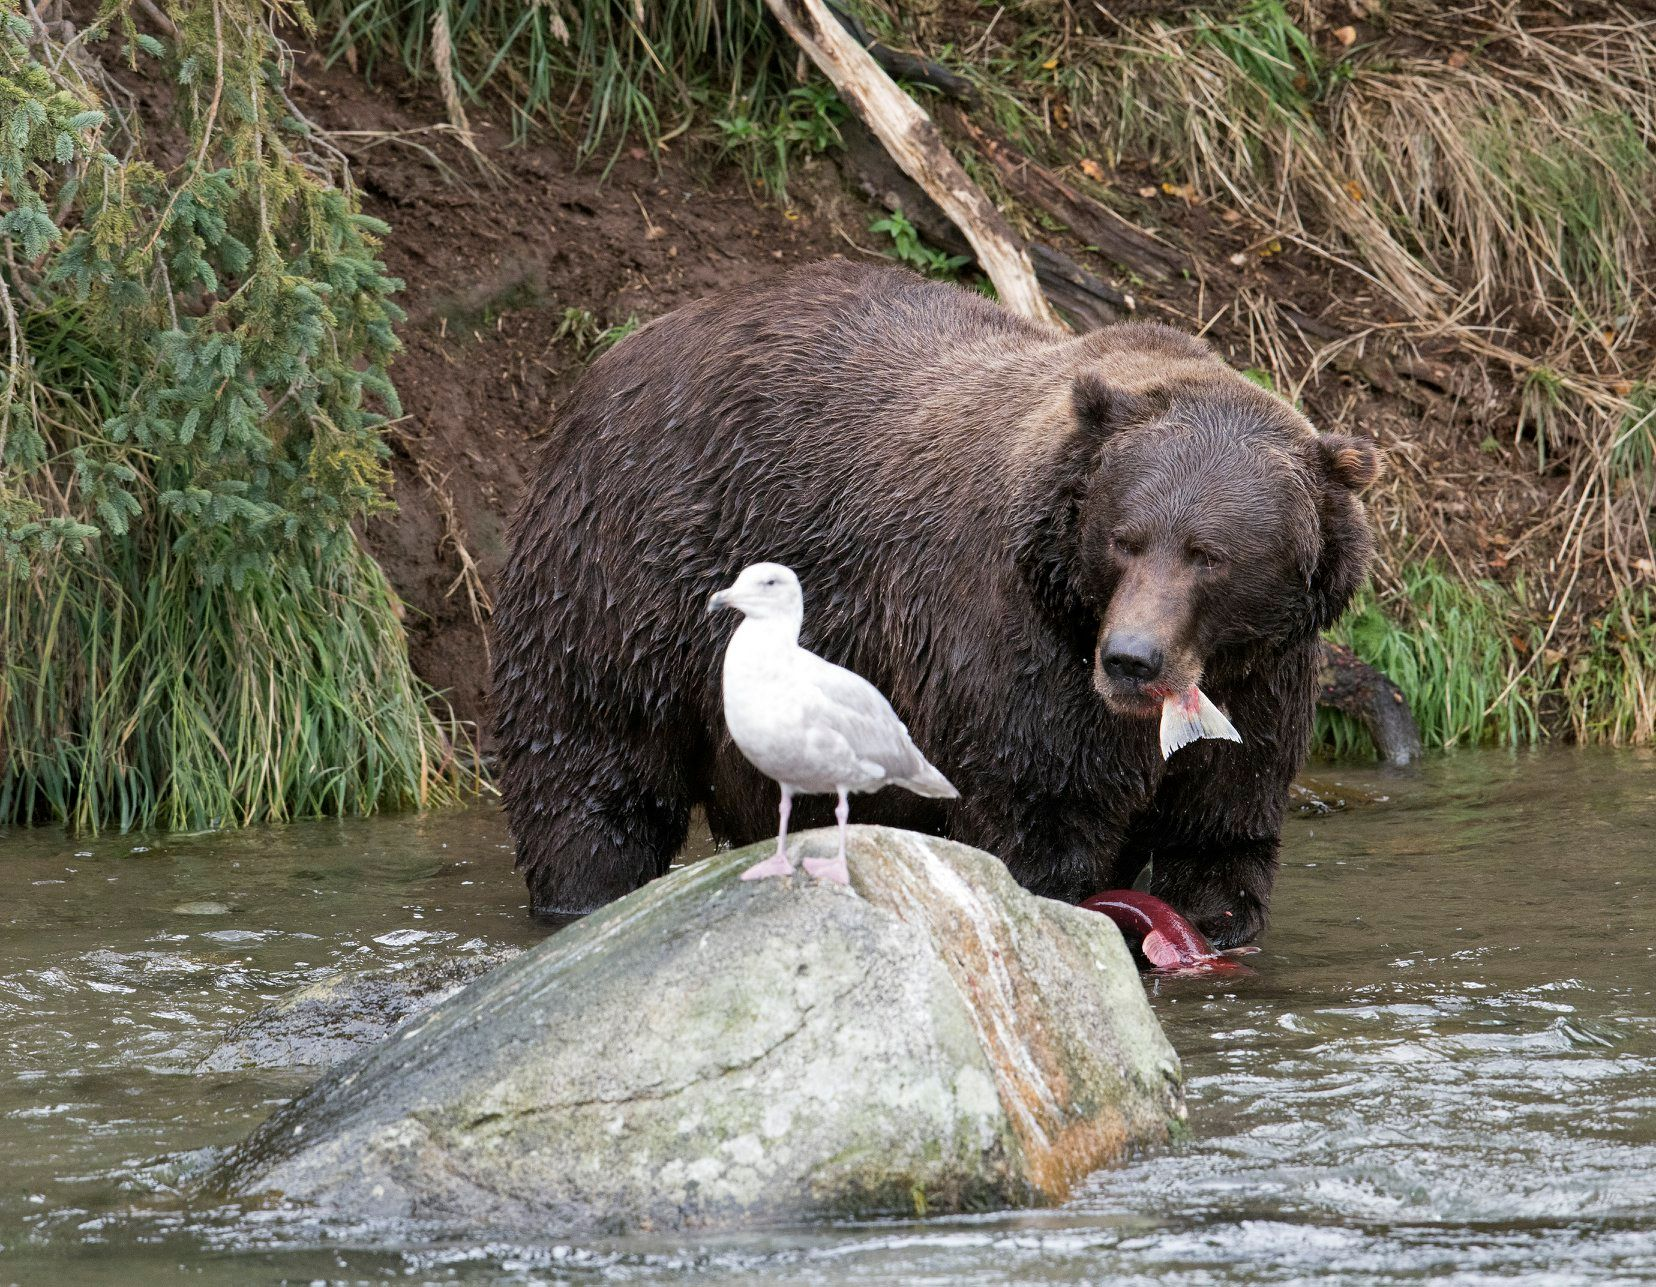 Bear looking at bird with fish in mouth